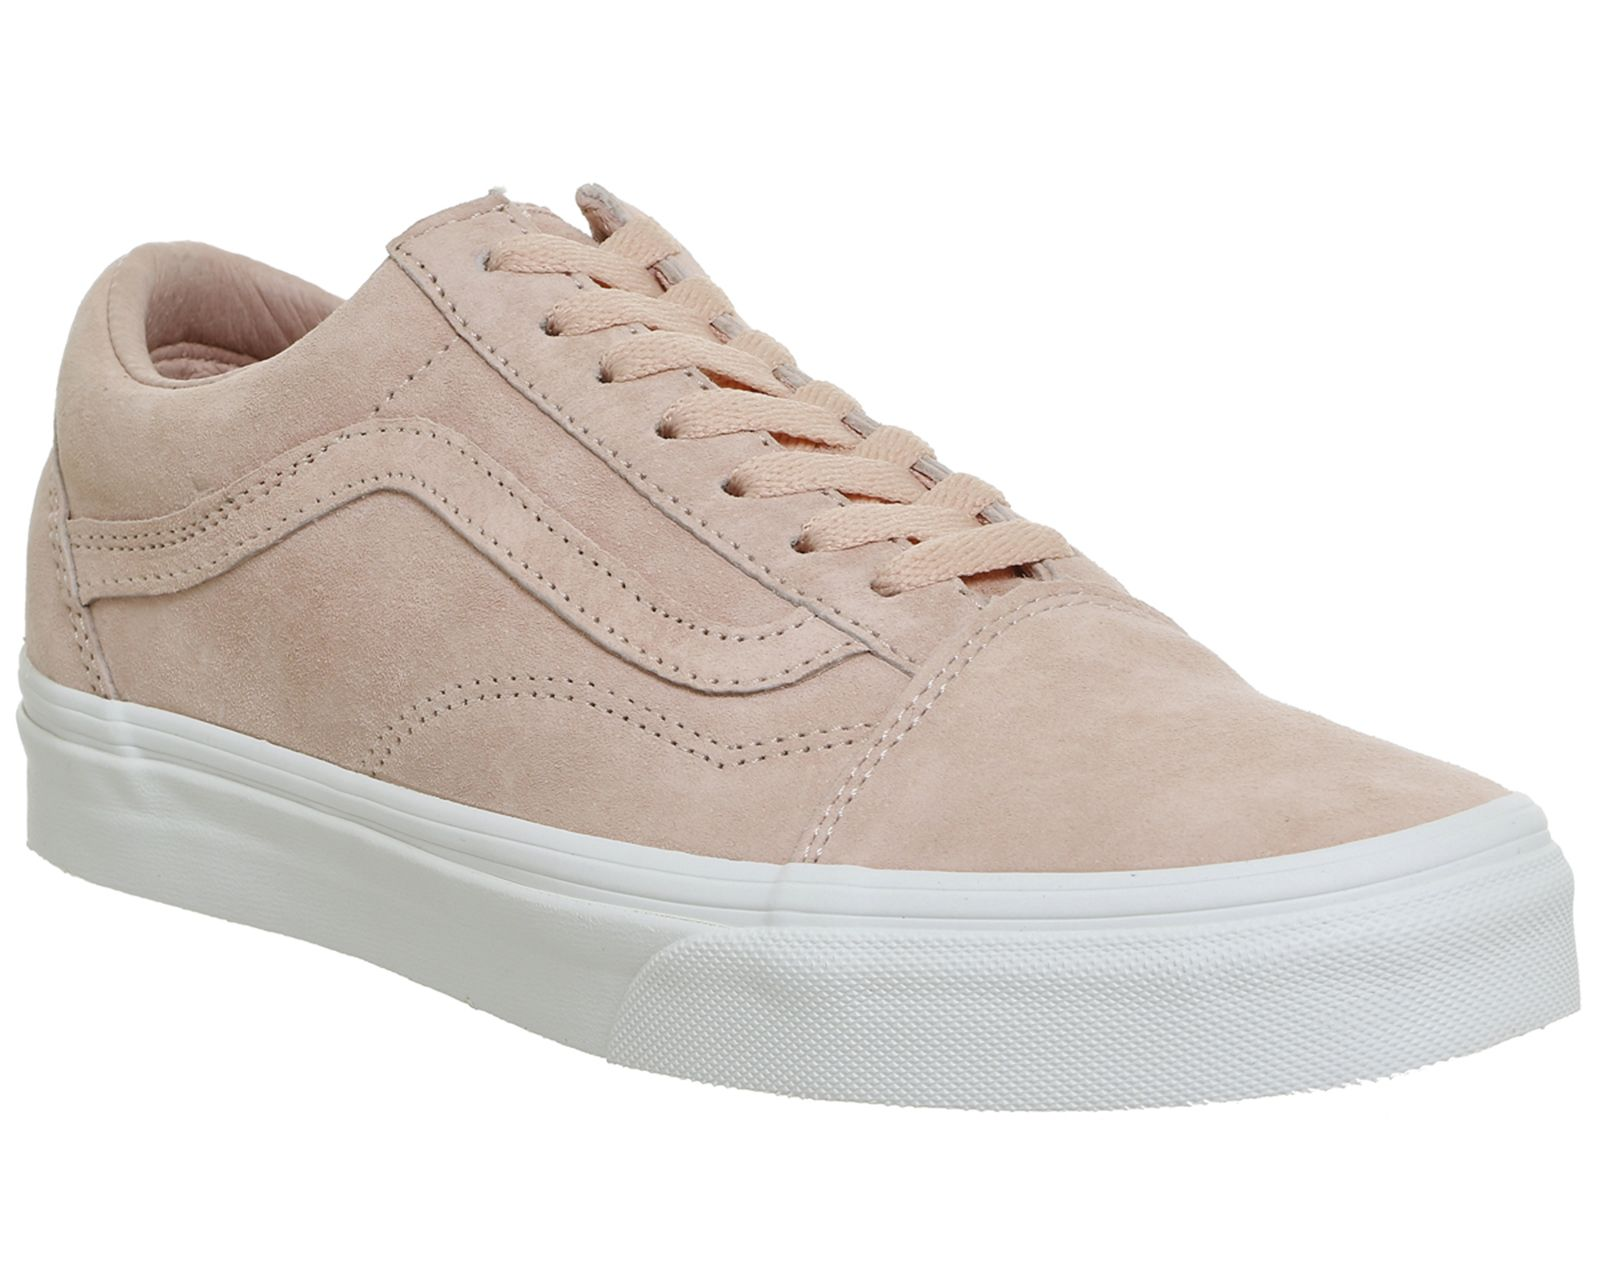 Discount Vans Spanish Villa Suede Old Skool Suede Trainers for Women Sale Online